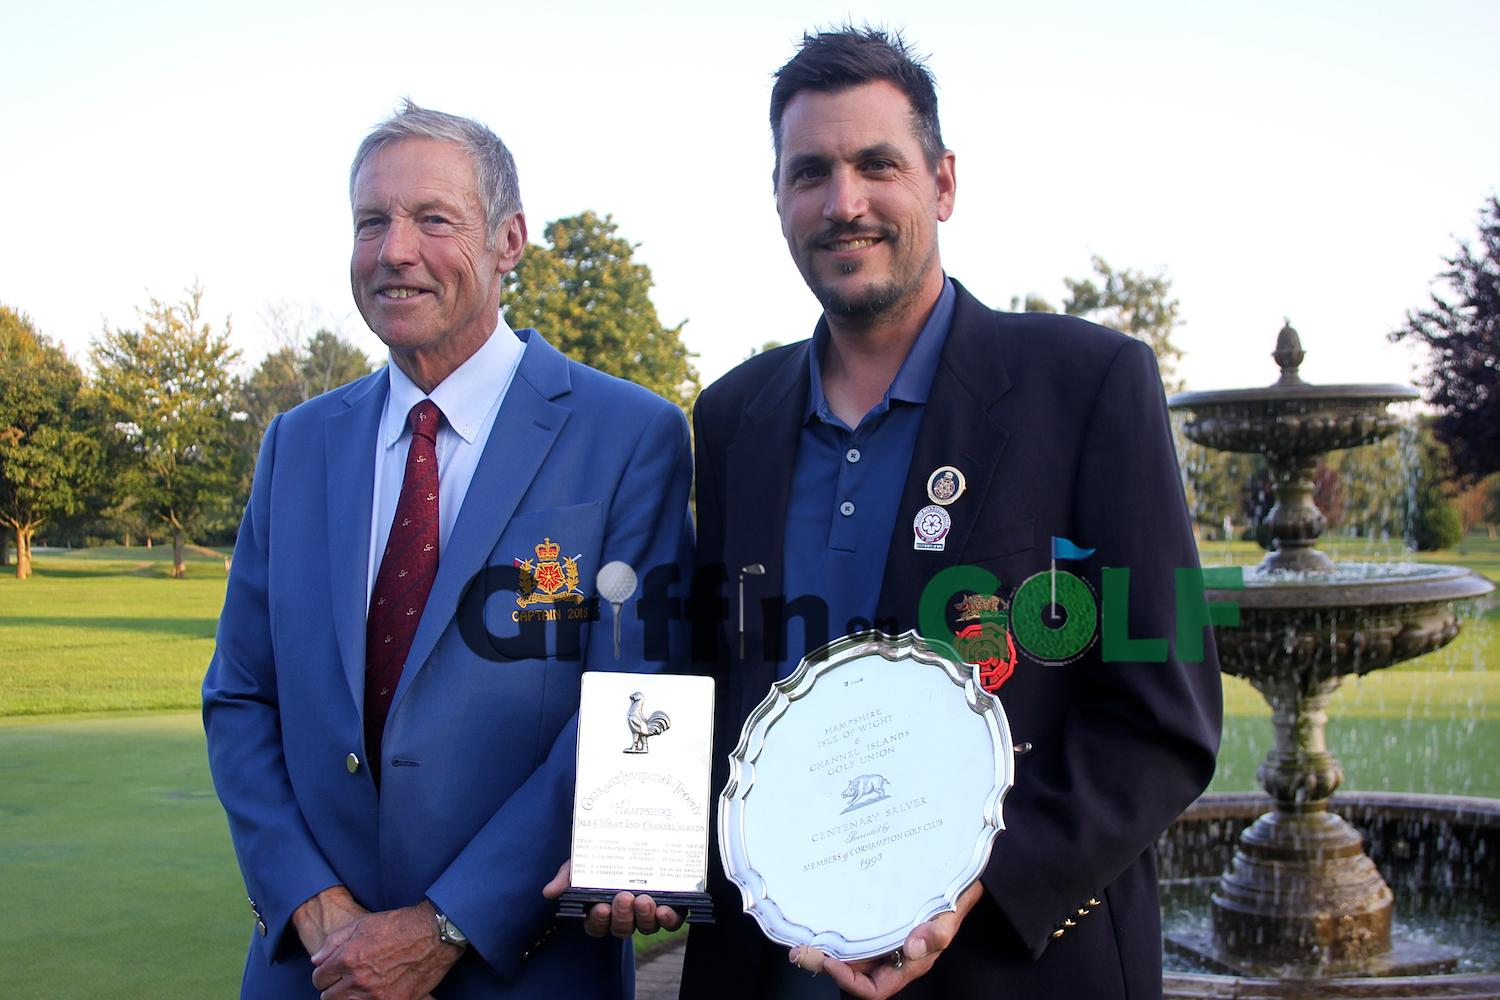 Hampshire Mid-Amateur Trophy winner Martin Young